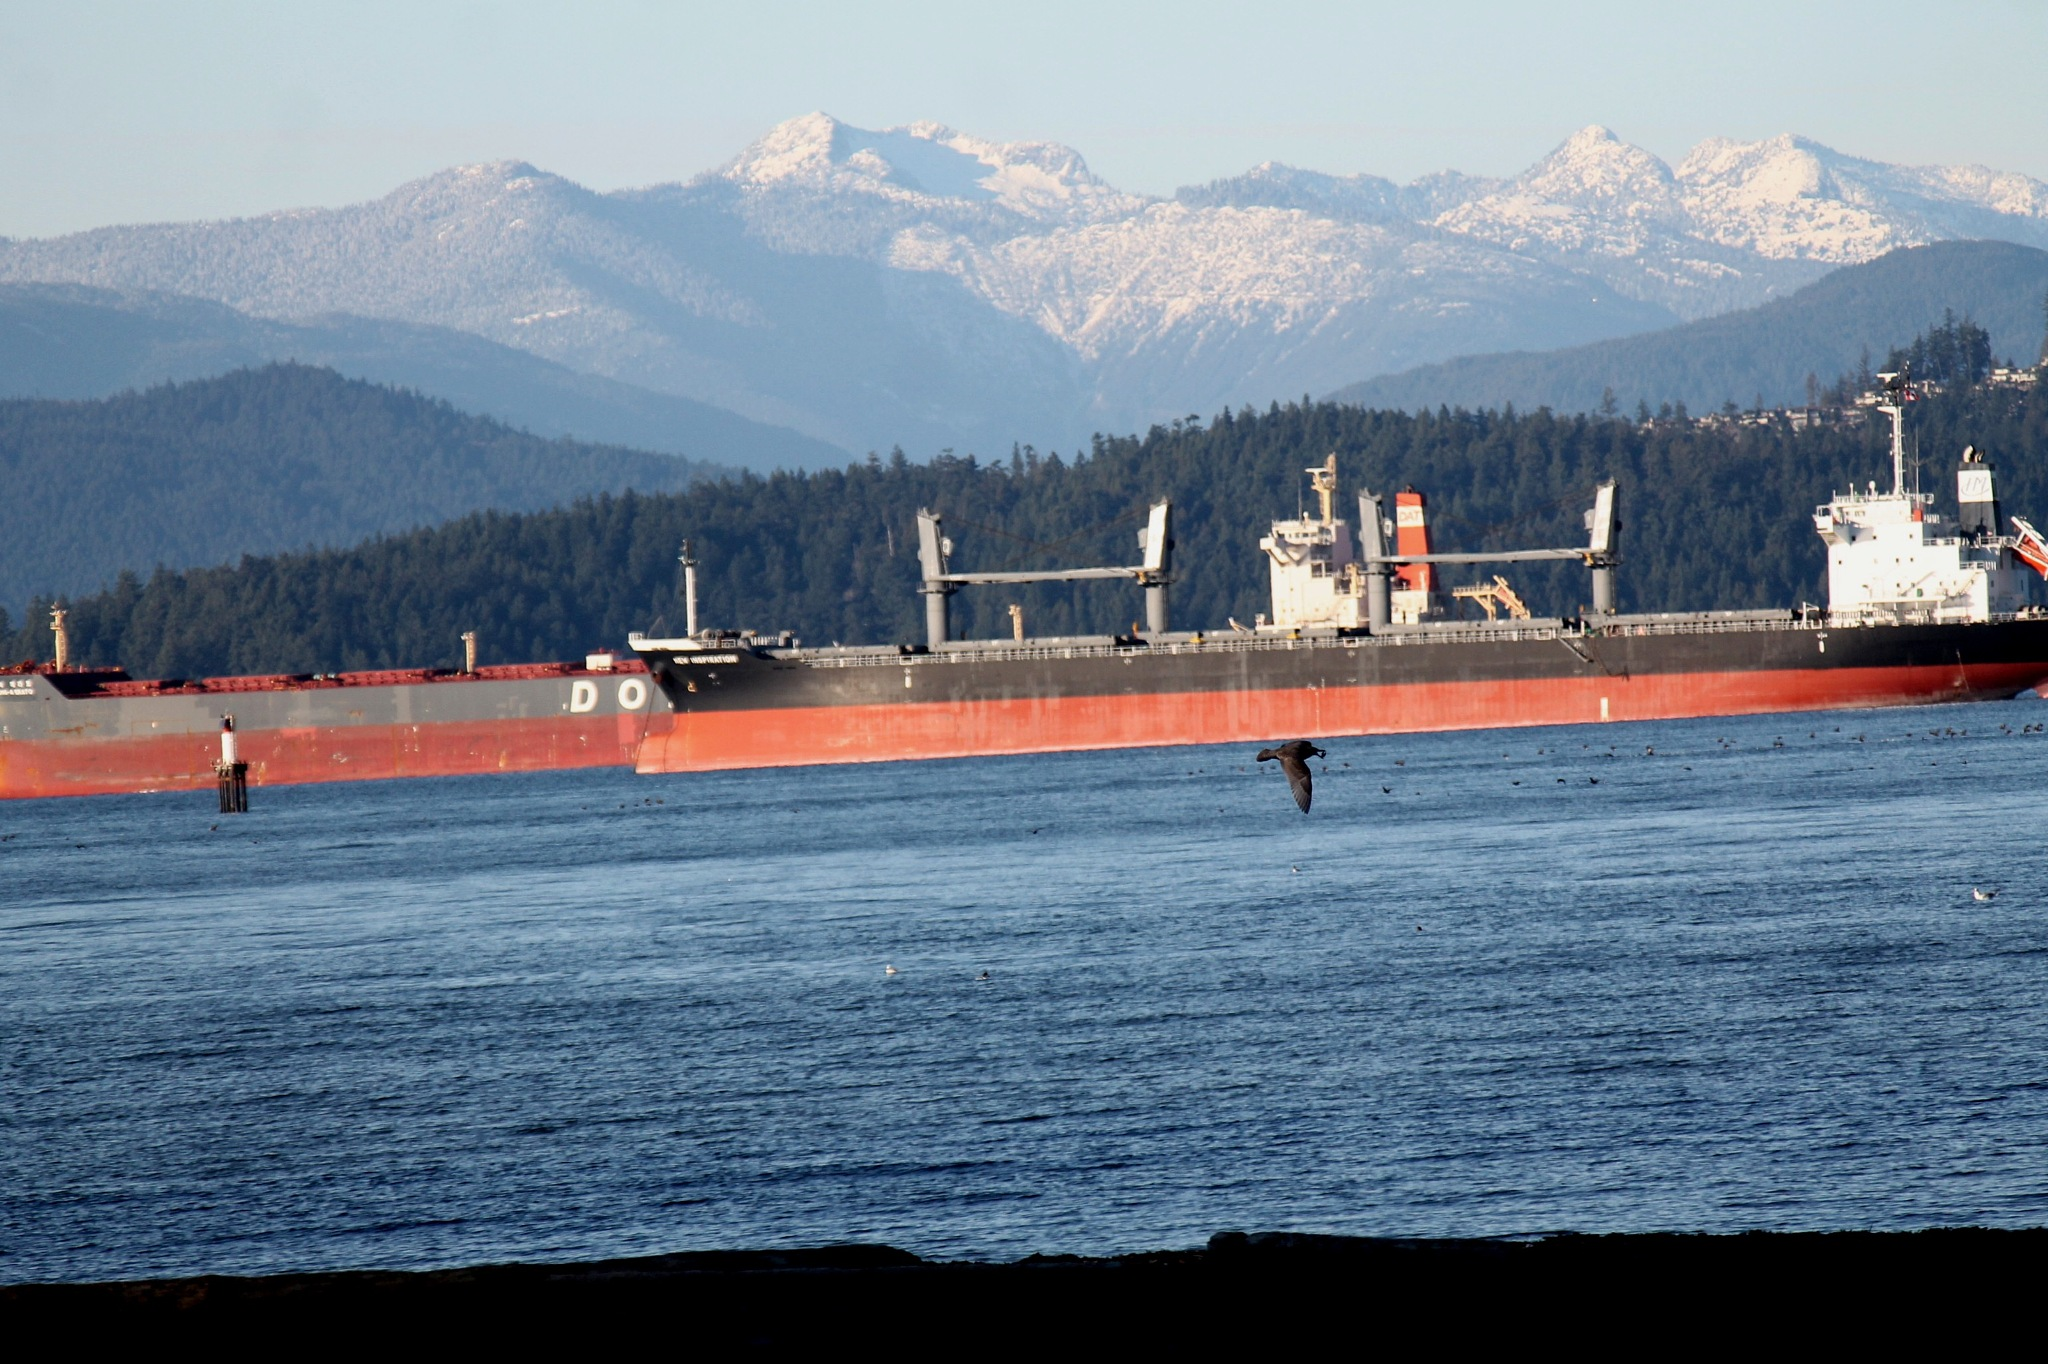 Waiting to get into Vancouver Harbour. by henrywall63